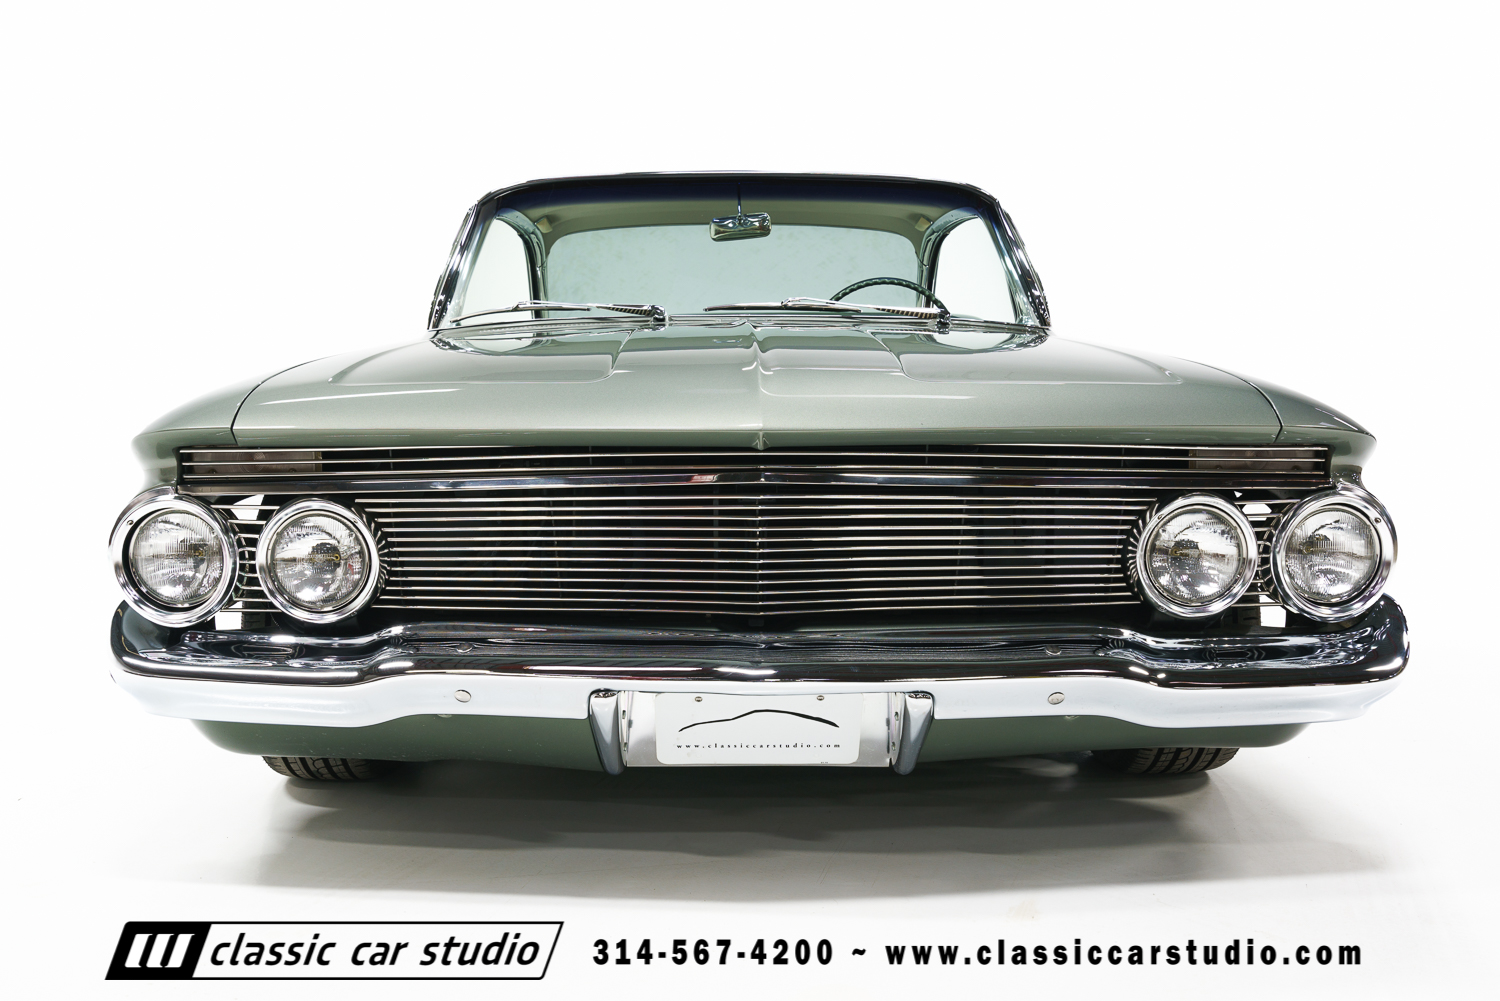 1961 Chevrolet Impala Classic Car Studio 1968 Custom Coupe 61 3